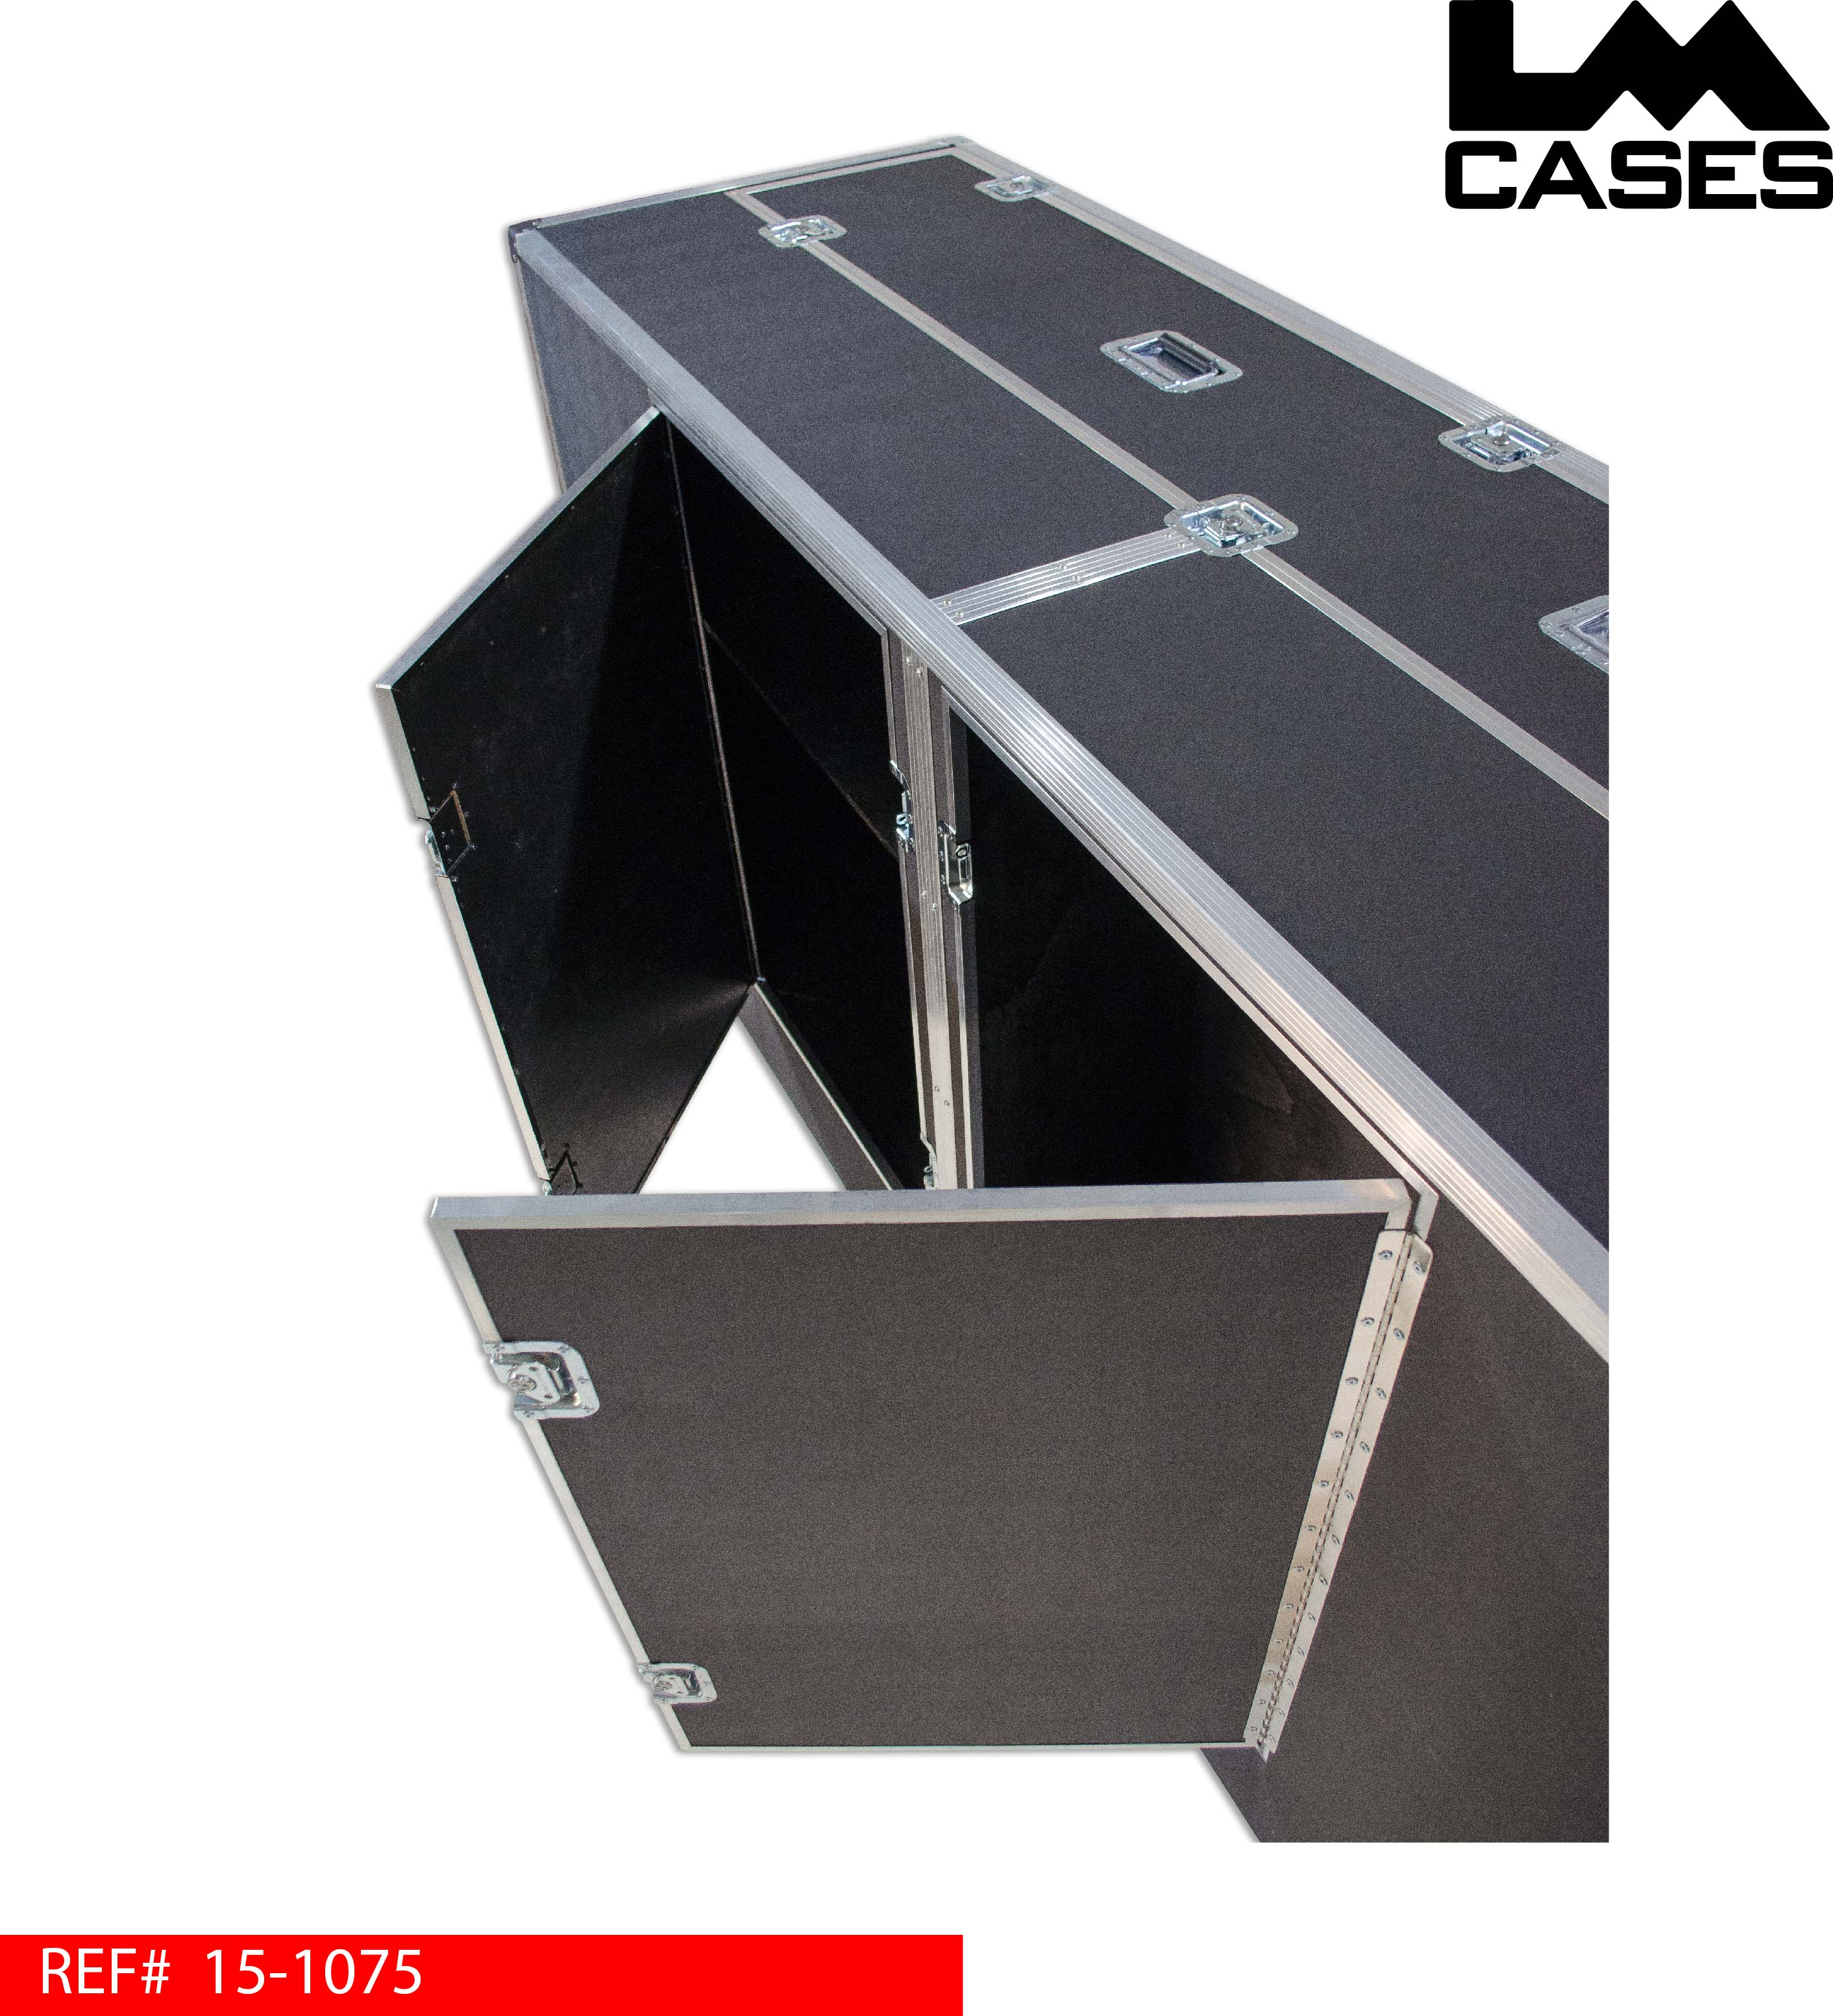 LM Cases: Products